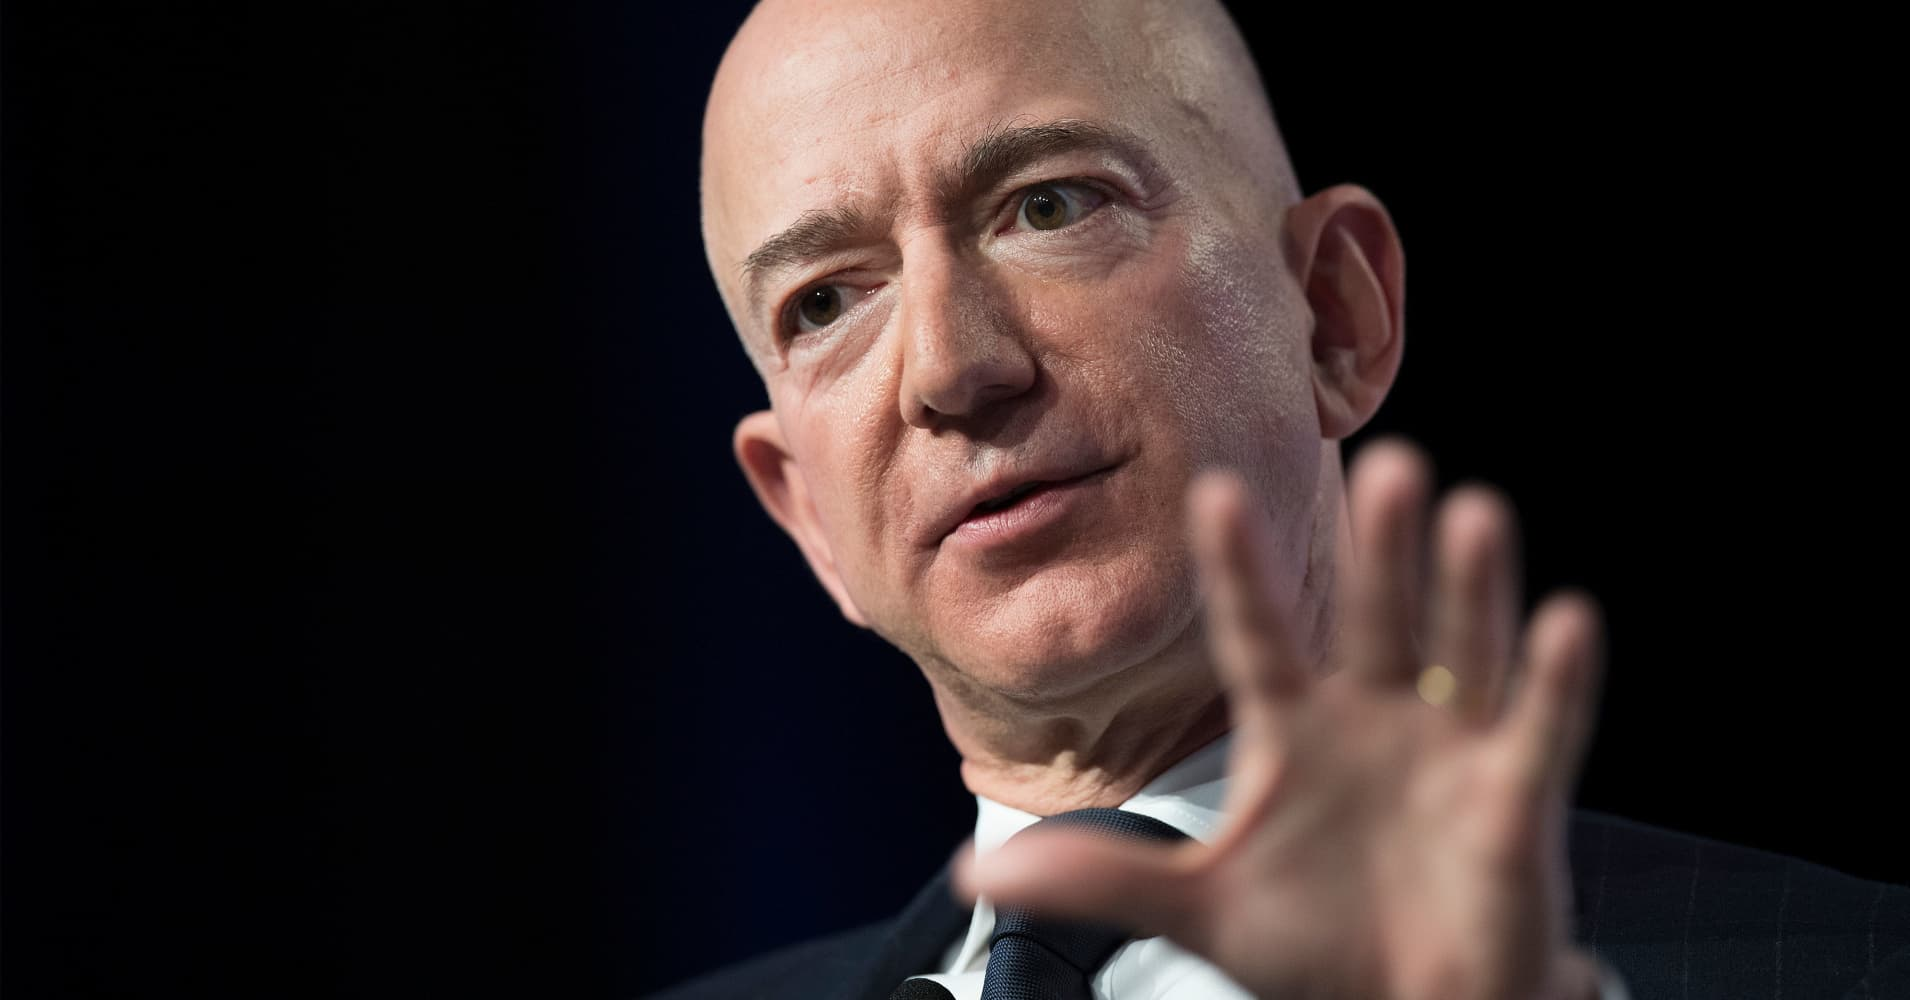 Saudi Arabia denies involvement in leak of Jeff Bezos' messages to the National Enquirer